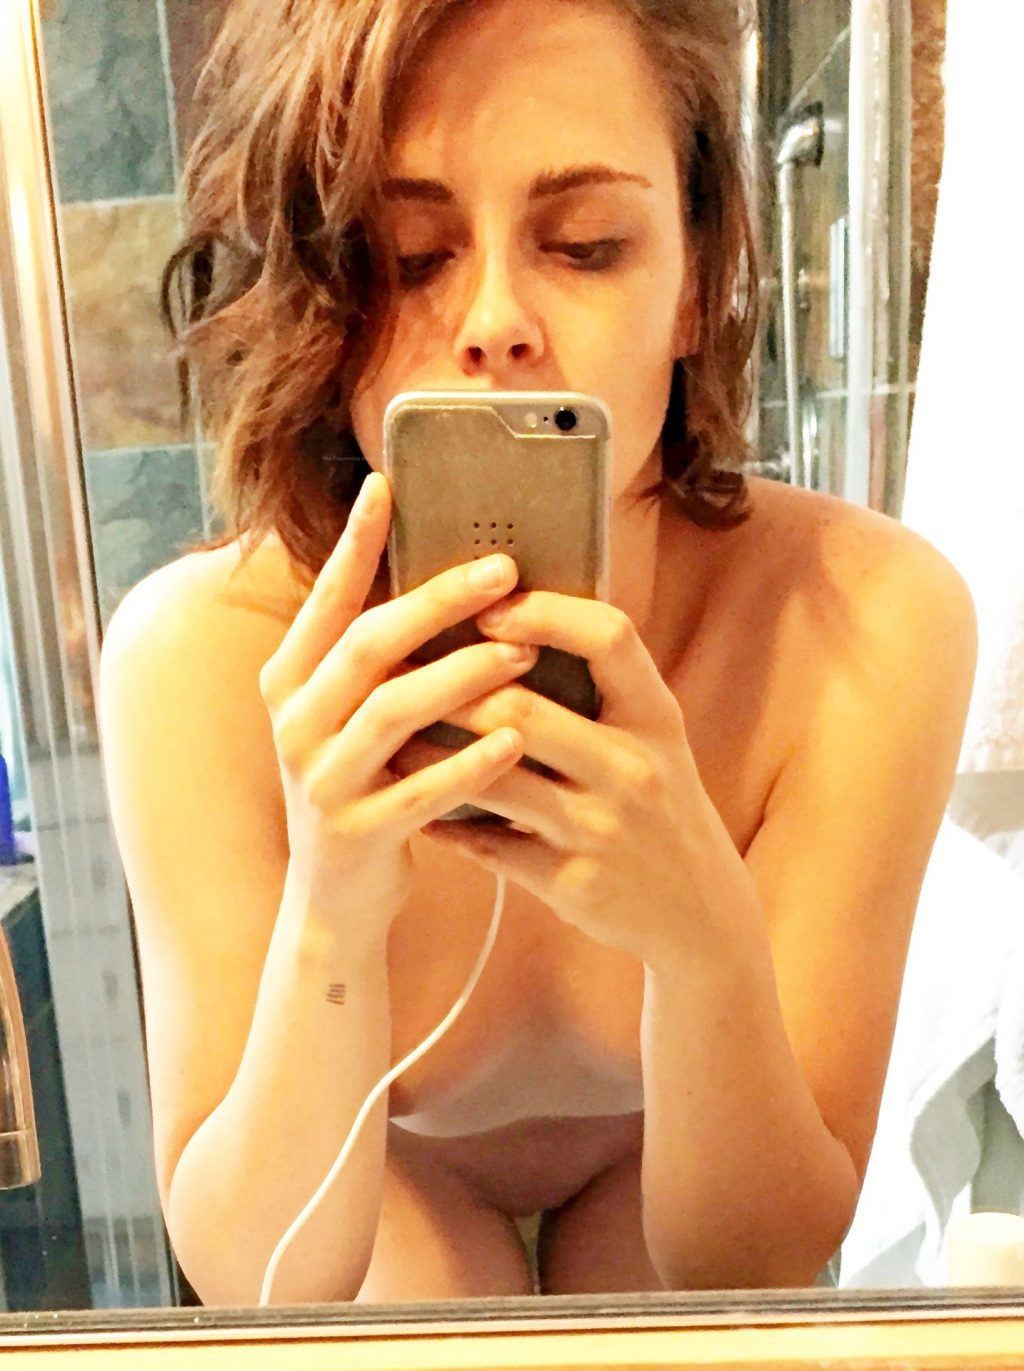 Kristen Stewart Nude Leaked The Fappening (2 Photos)